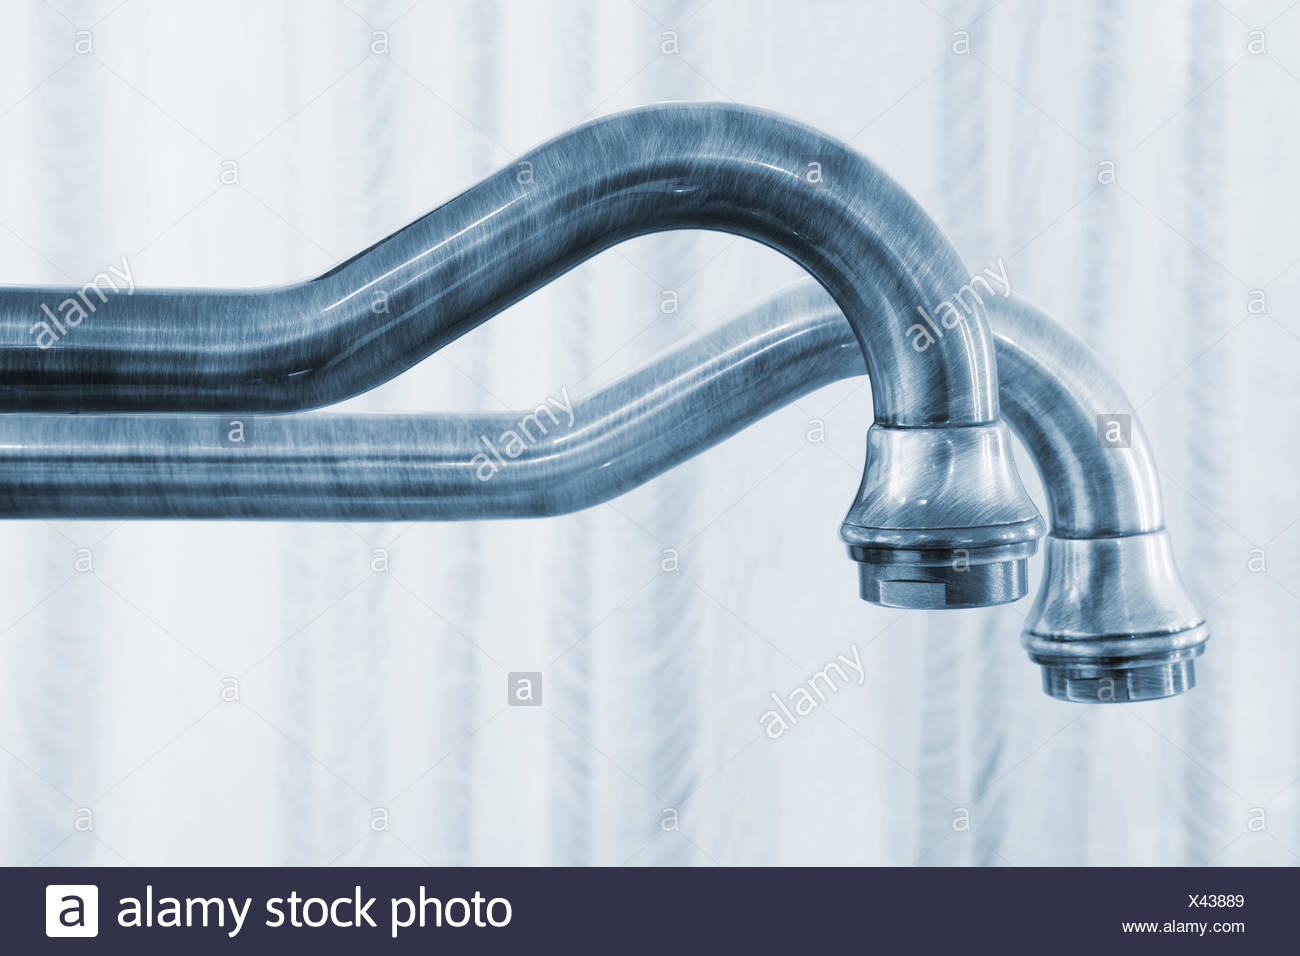 Copper Taps Stock Photos & Copper Taps Stock Images - Alamy